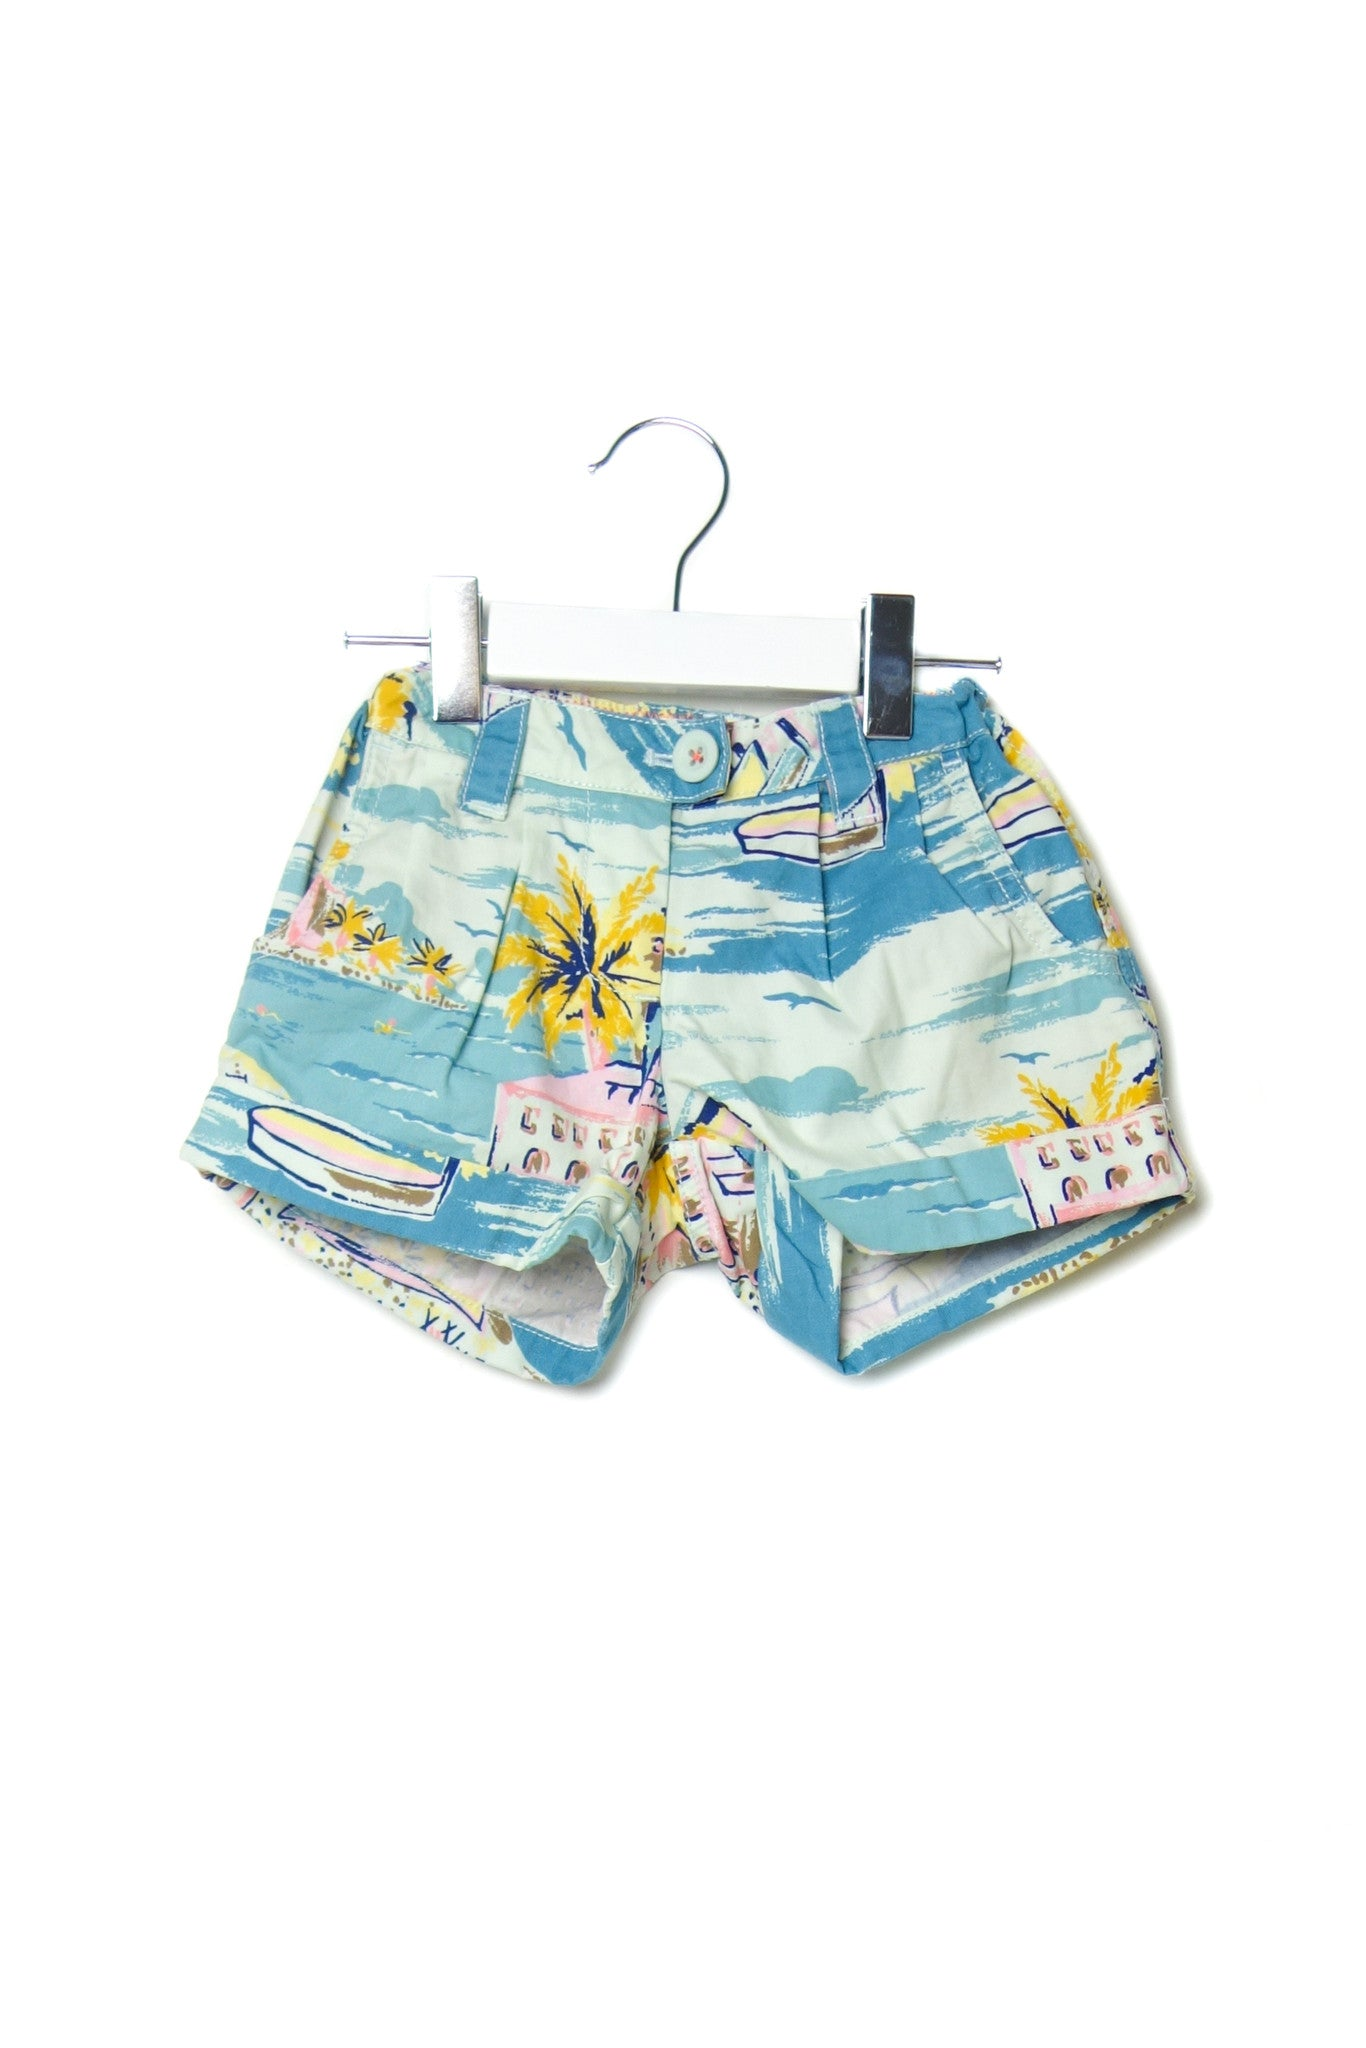 10002020 Boden Kids~Shorts 5T at Retykle